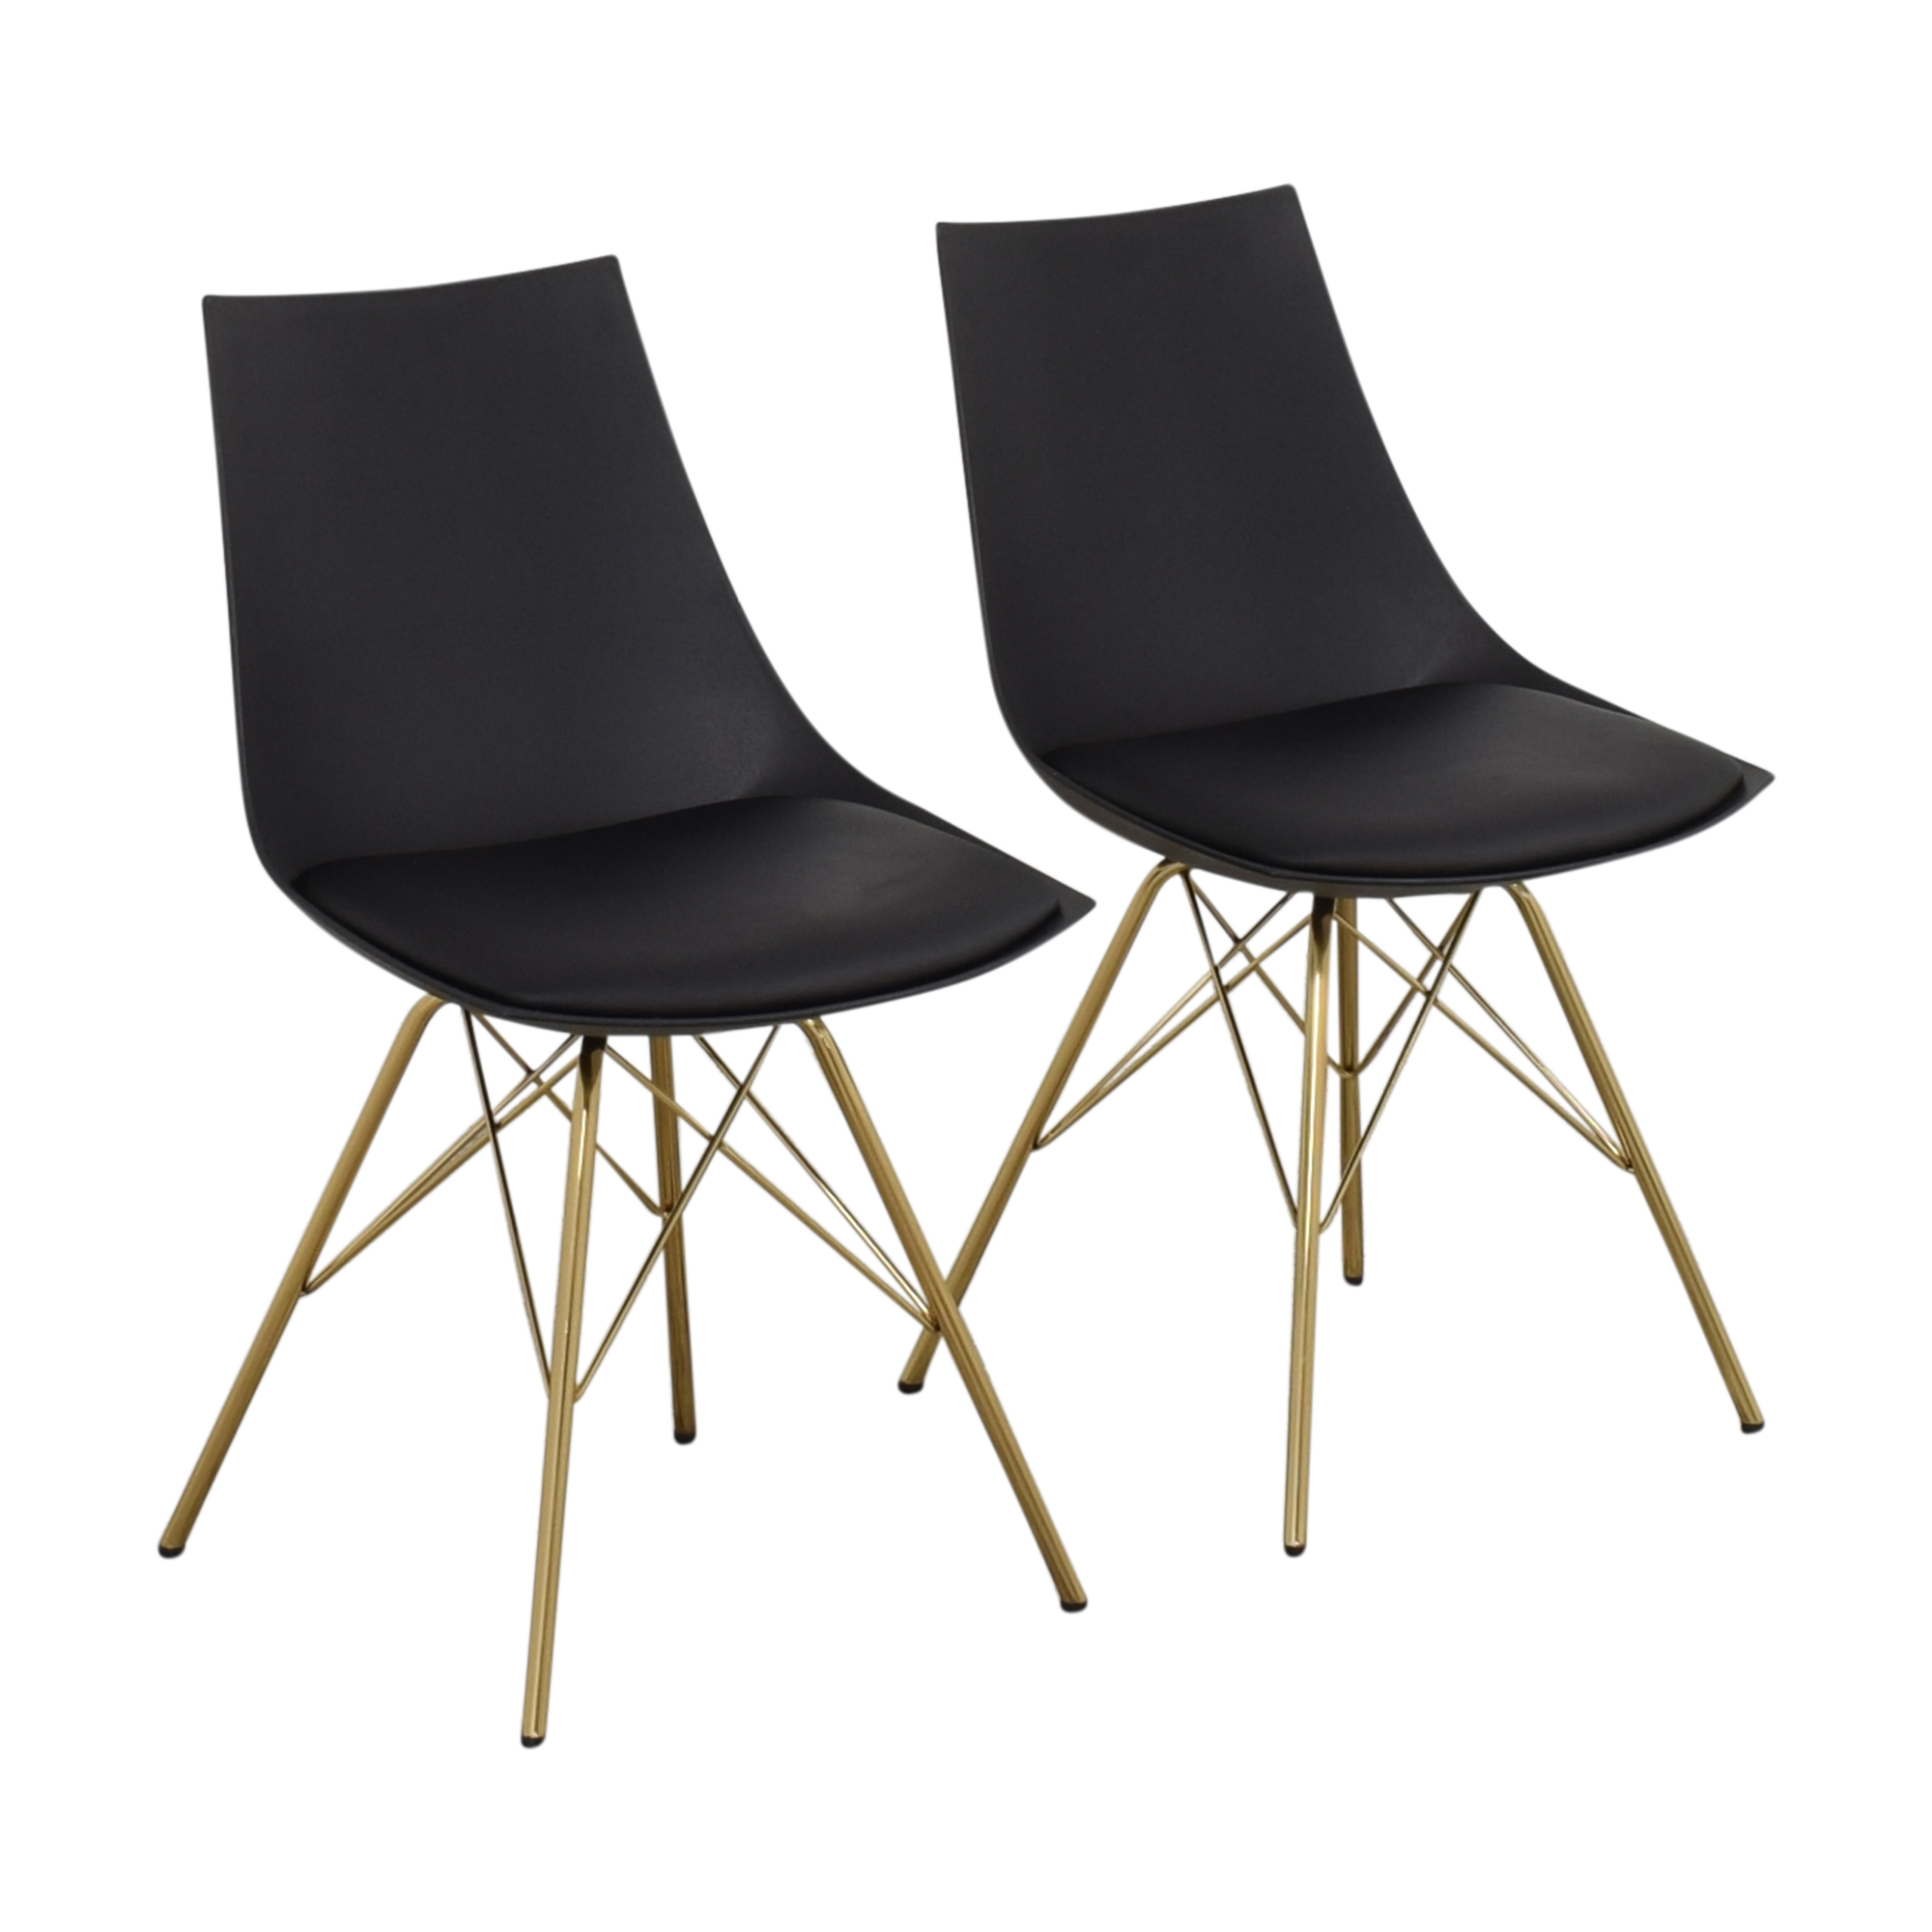 Office Star Office Star Dining Chairs with Padded Seat in Black Chairs